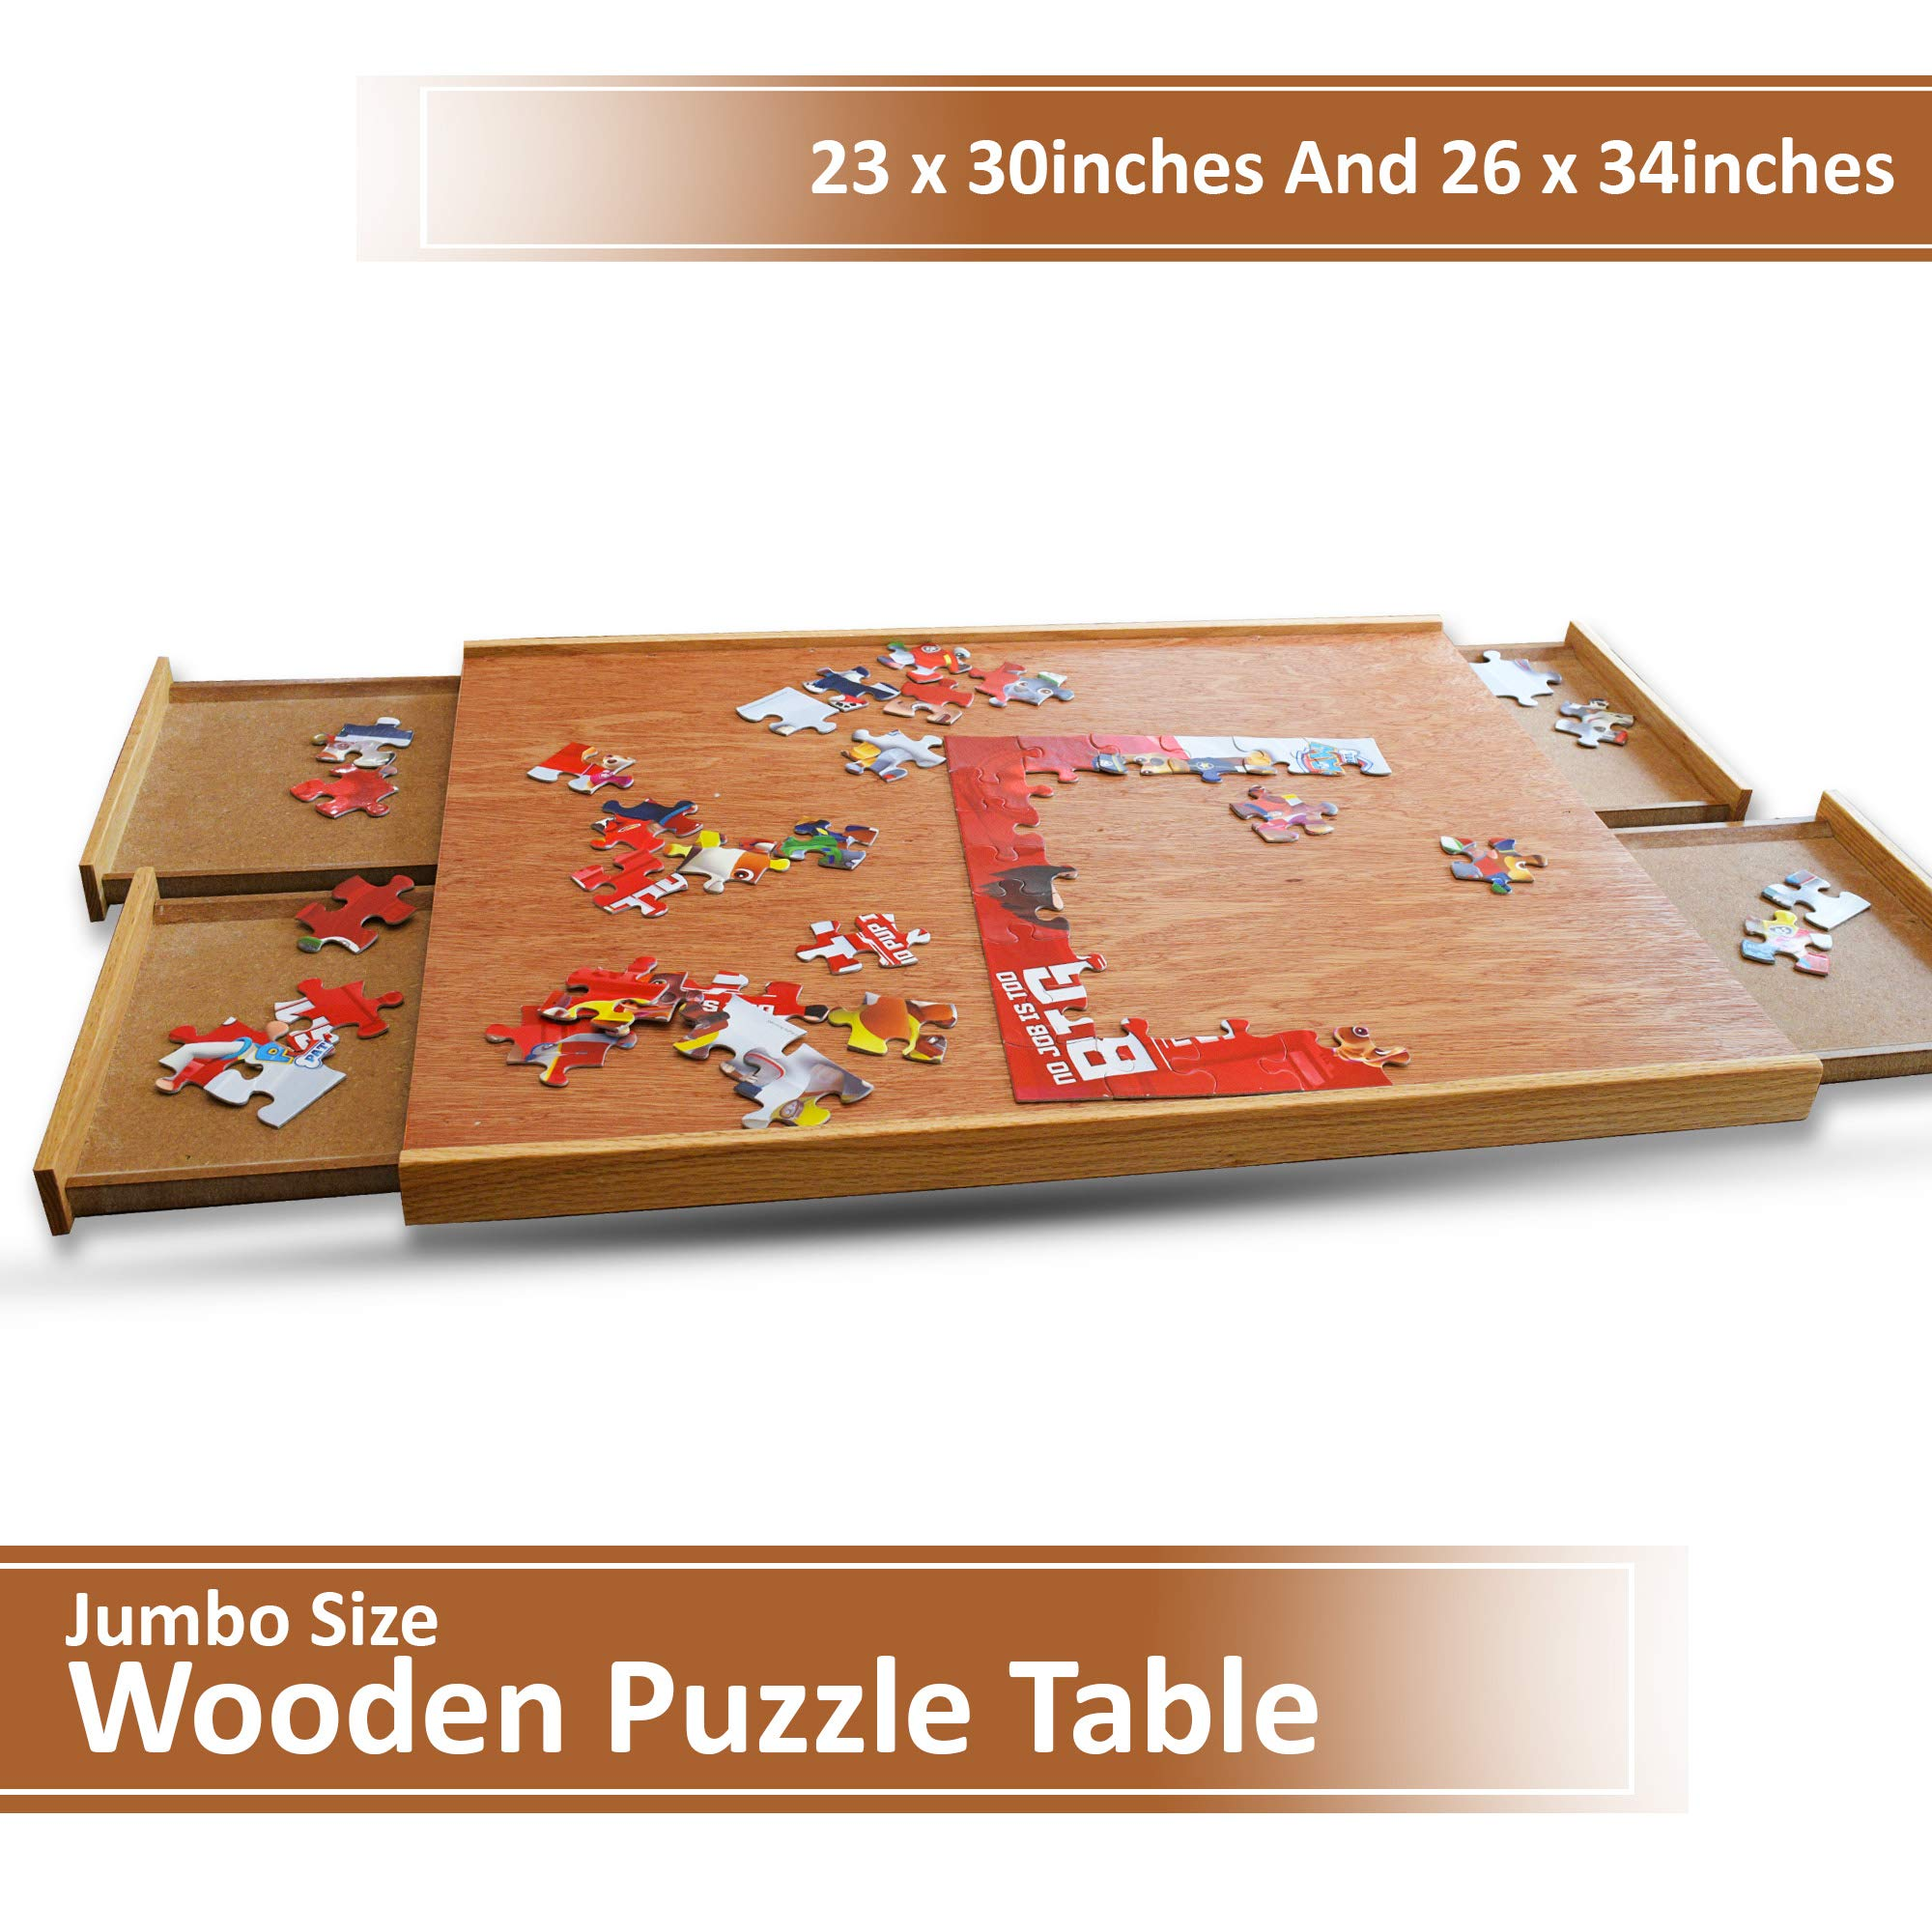 Hardwood Maple Puzzle Plateau Table - Furniture Grade Lacquer Finish - Solid Wood Frame - Four Storage Drawers For Jigsaw Puzzles - Fits Most 1000 Piece Puzzle - 23 X 30 In - Give the Gift of Puzzling by Pinnacle Woodcraft